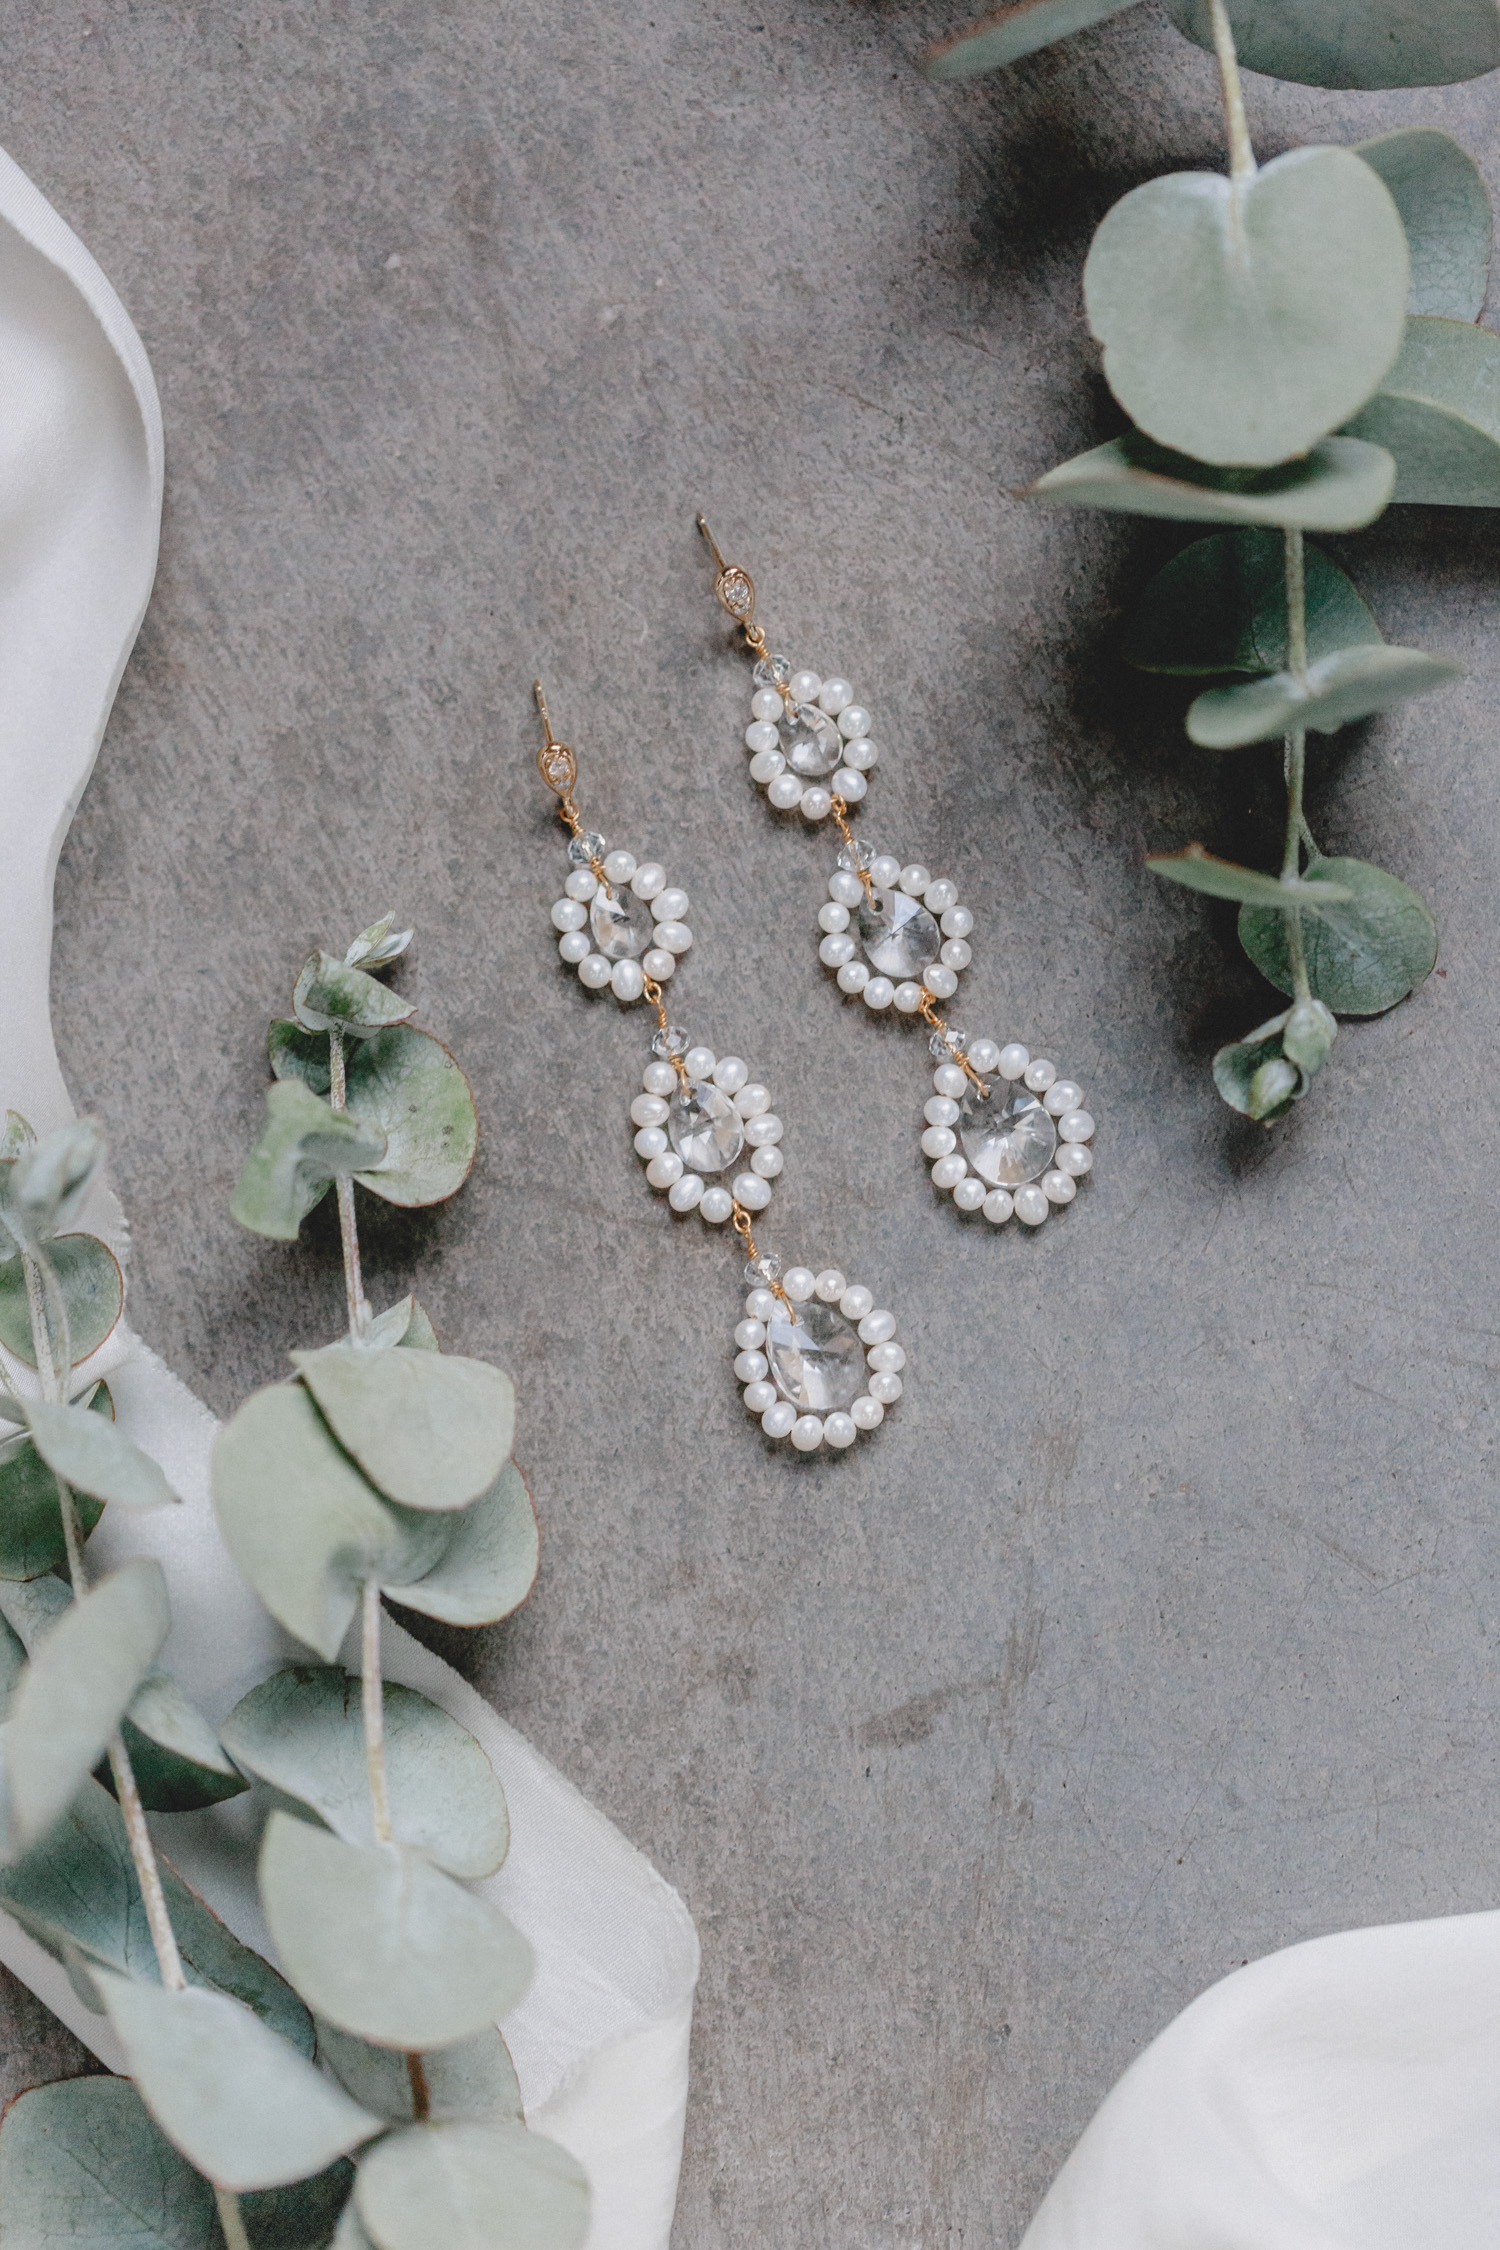 These opulent earrings unite three interconnected circles of shimmering freshwater pearls, each framing a sparkling, eye-catching Swarovski crystal of varying sizes.